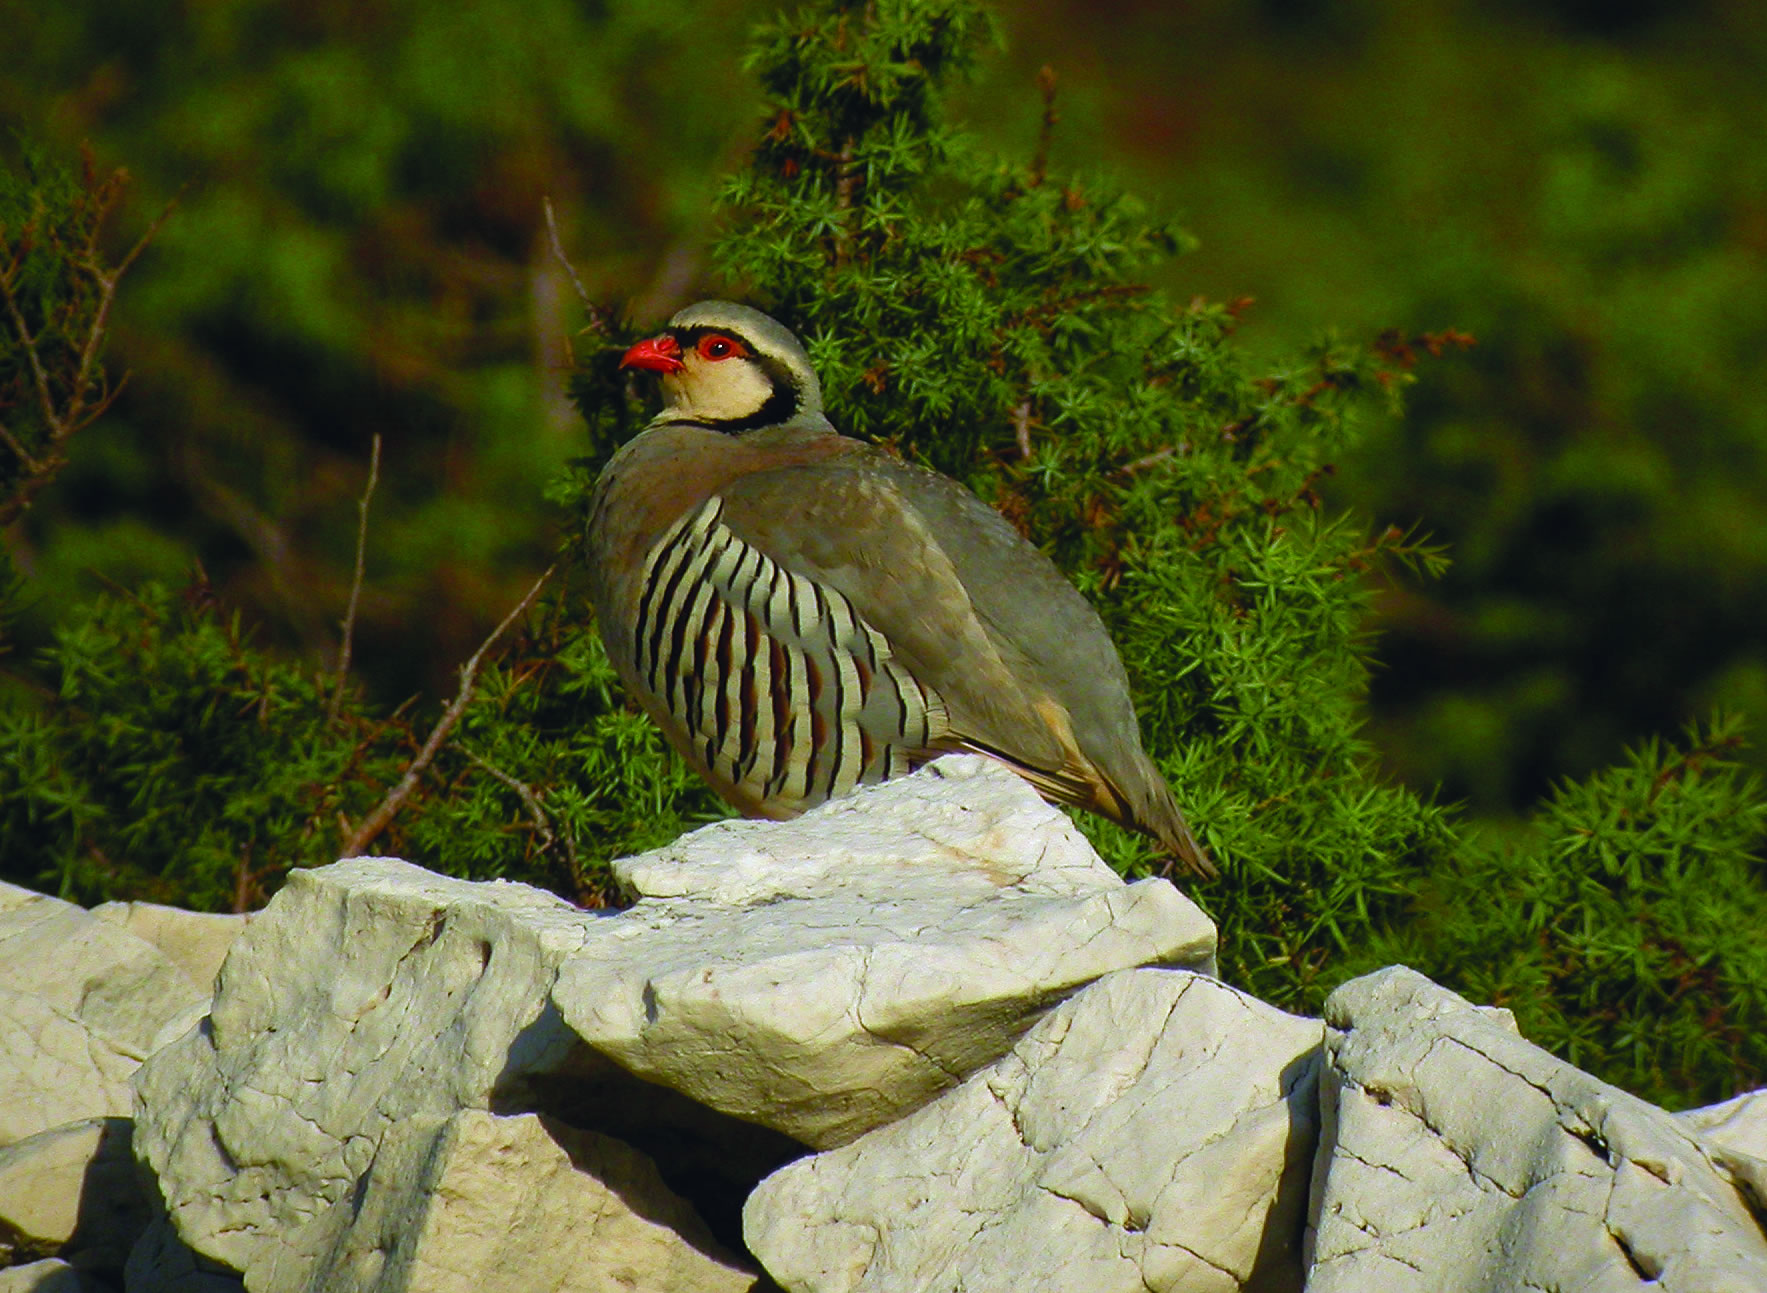 Birdwatching, birdwatching tour, various species of birds, birds, Croatia